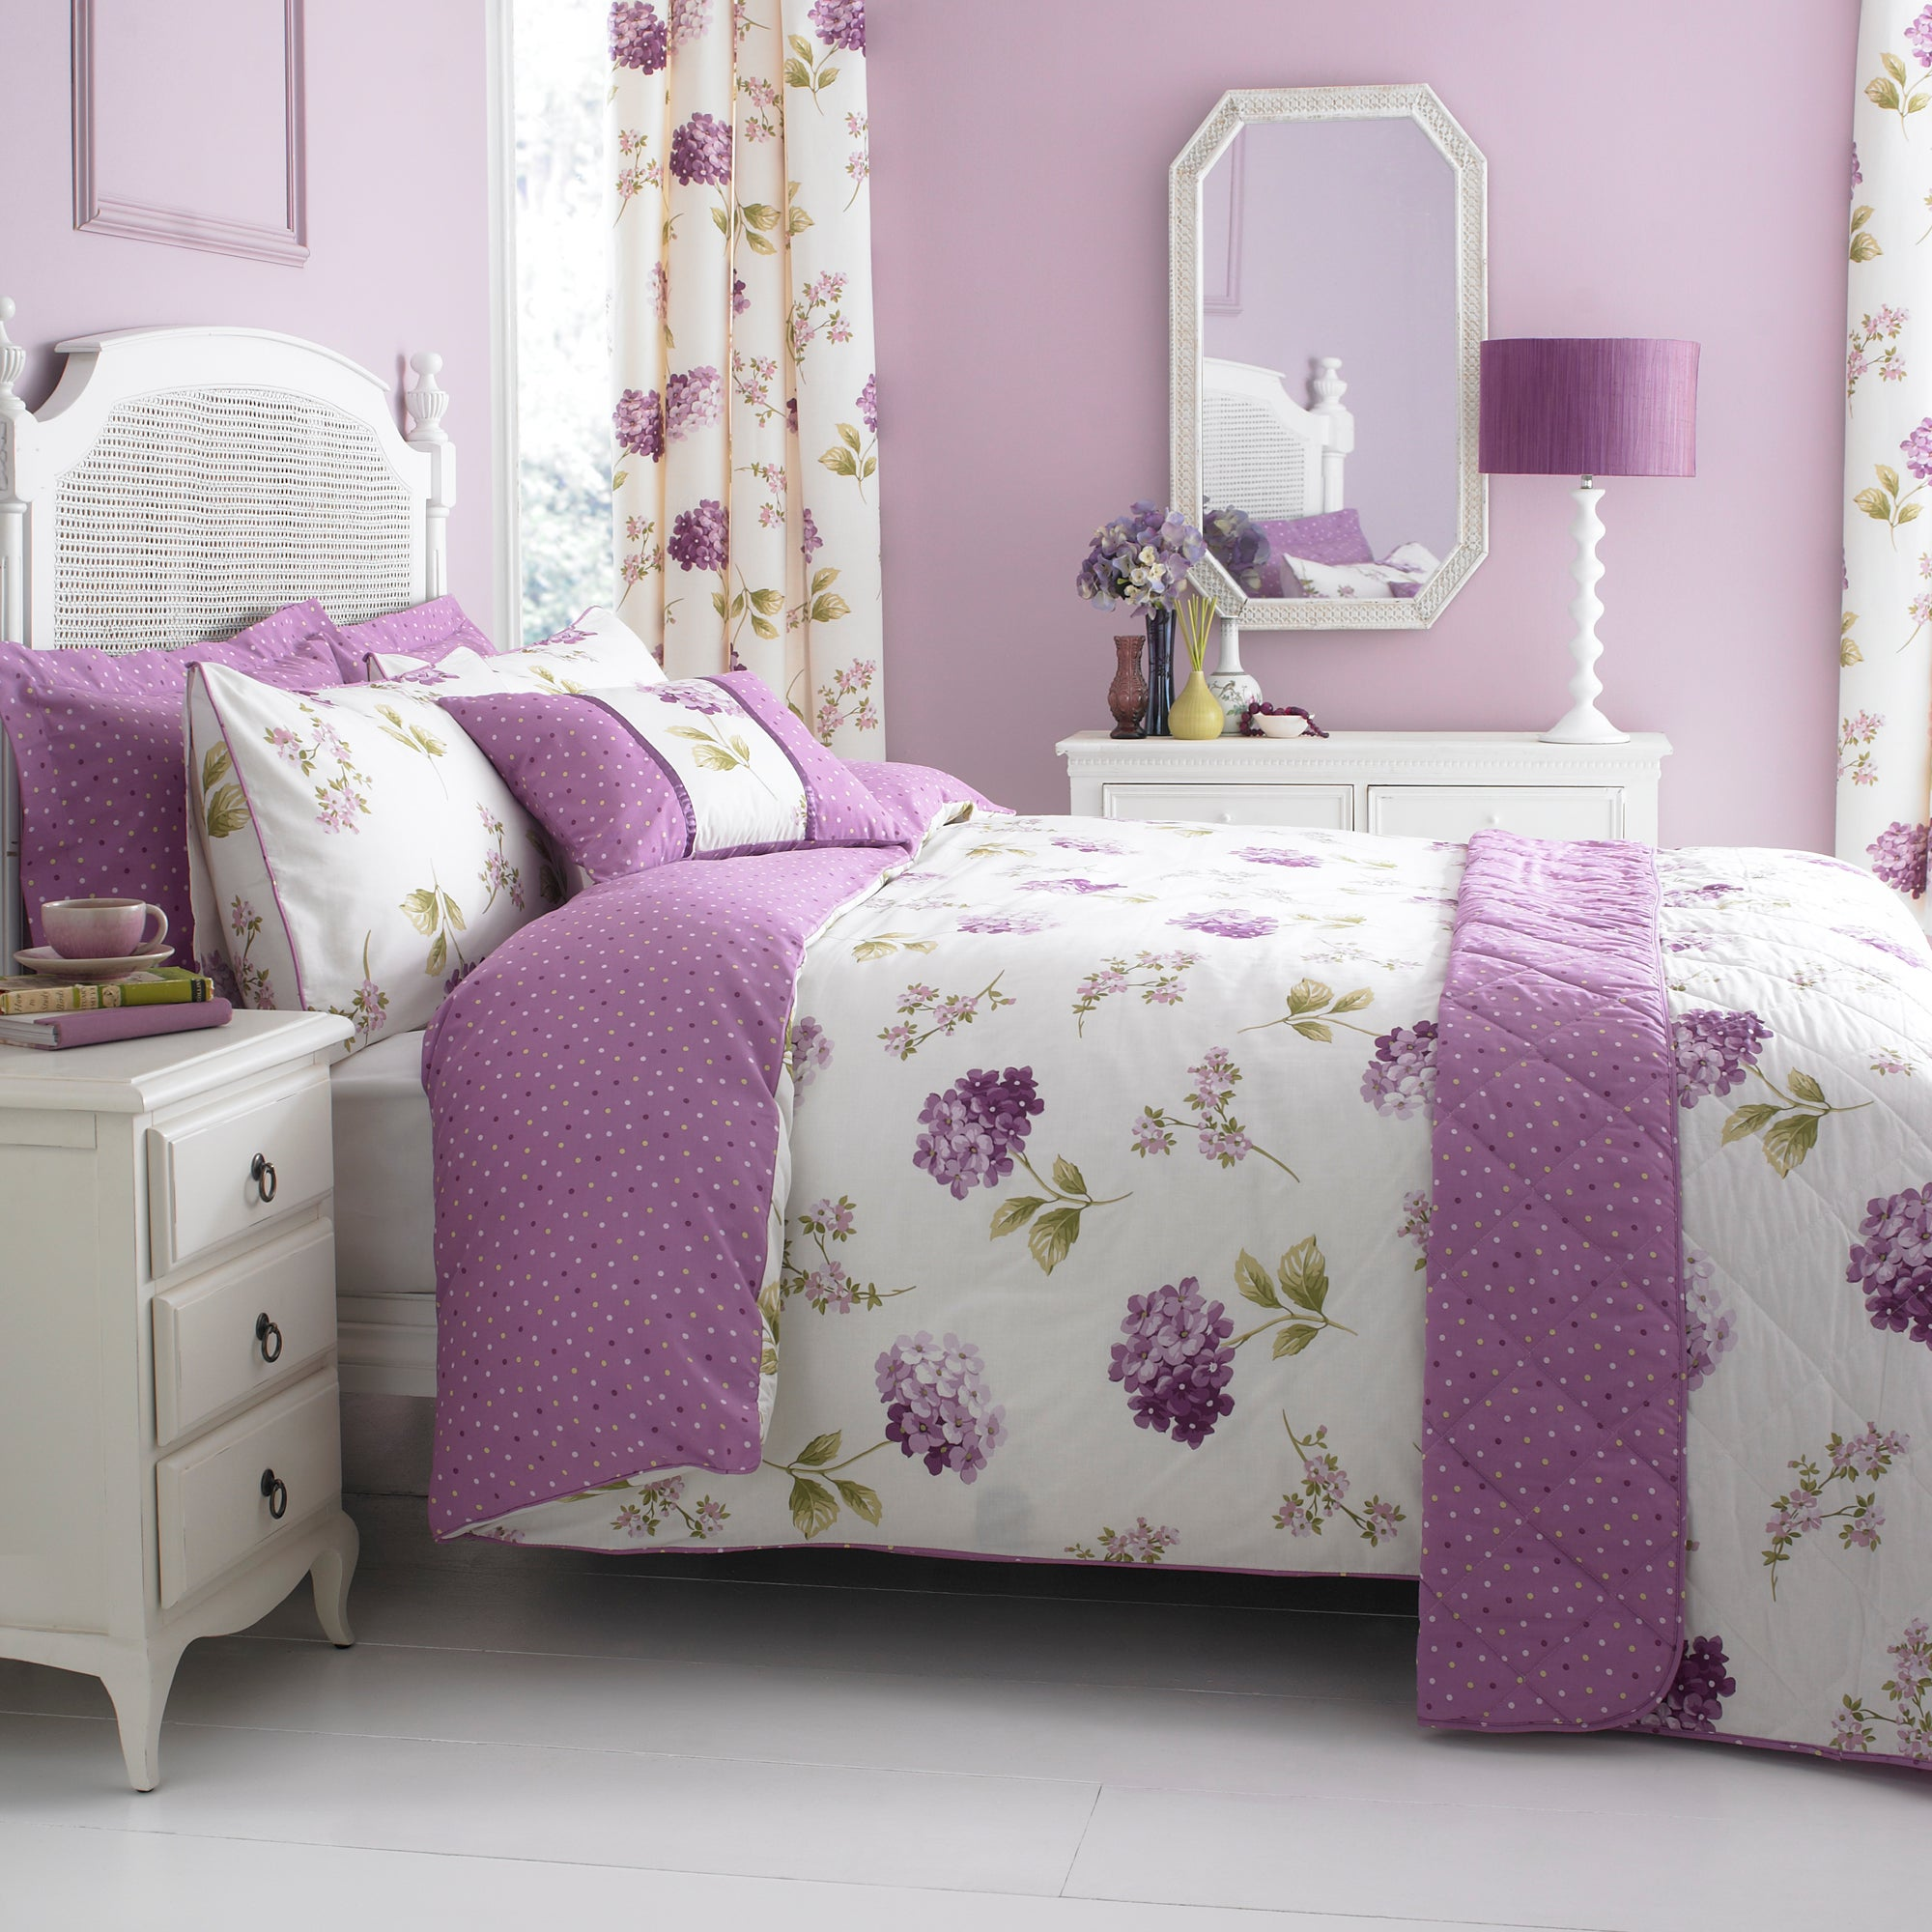 heather erin collection duvet cover set dunelm. Black Bedroom Furniture Sets. Home Design Ideas